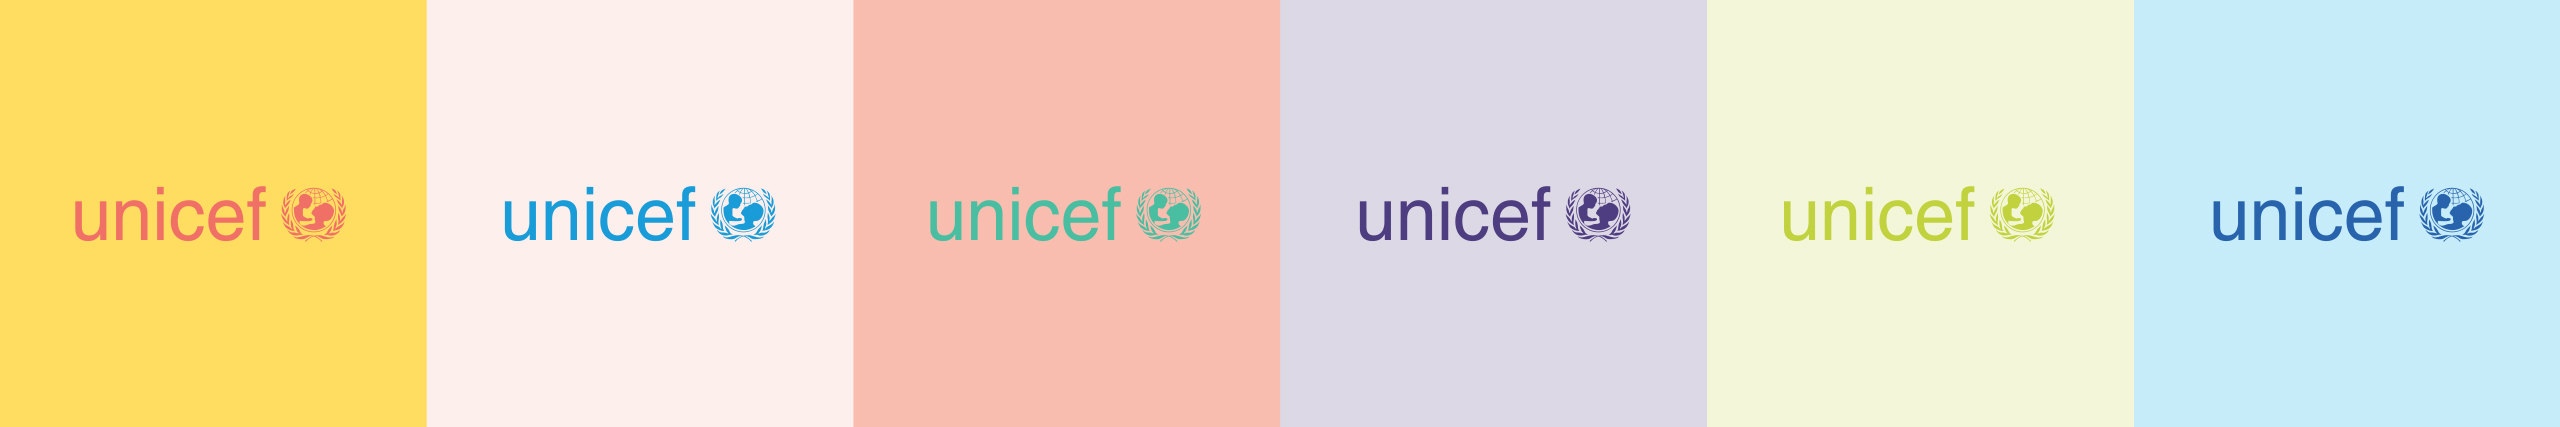 UNICEF_Band_Logos_2560wide